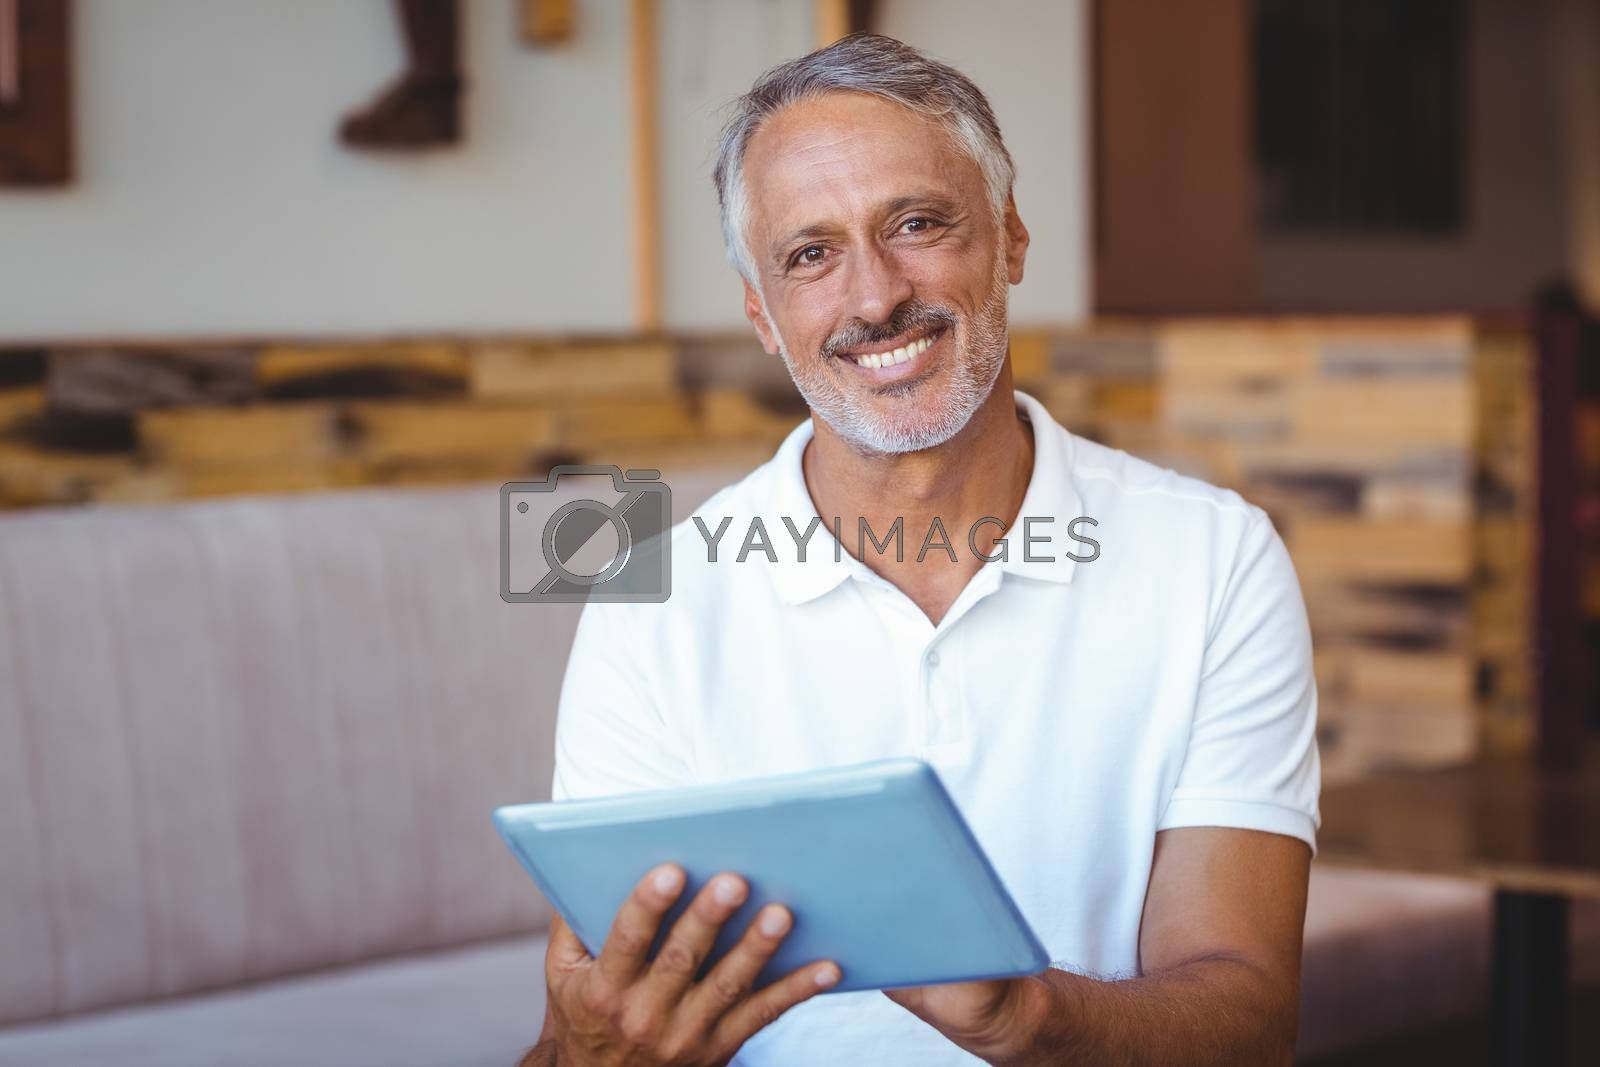 Royalty free image of Casual man using his tablet by Wavebreakmedia